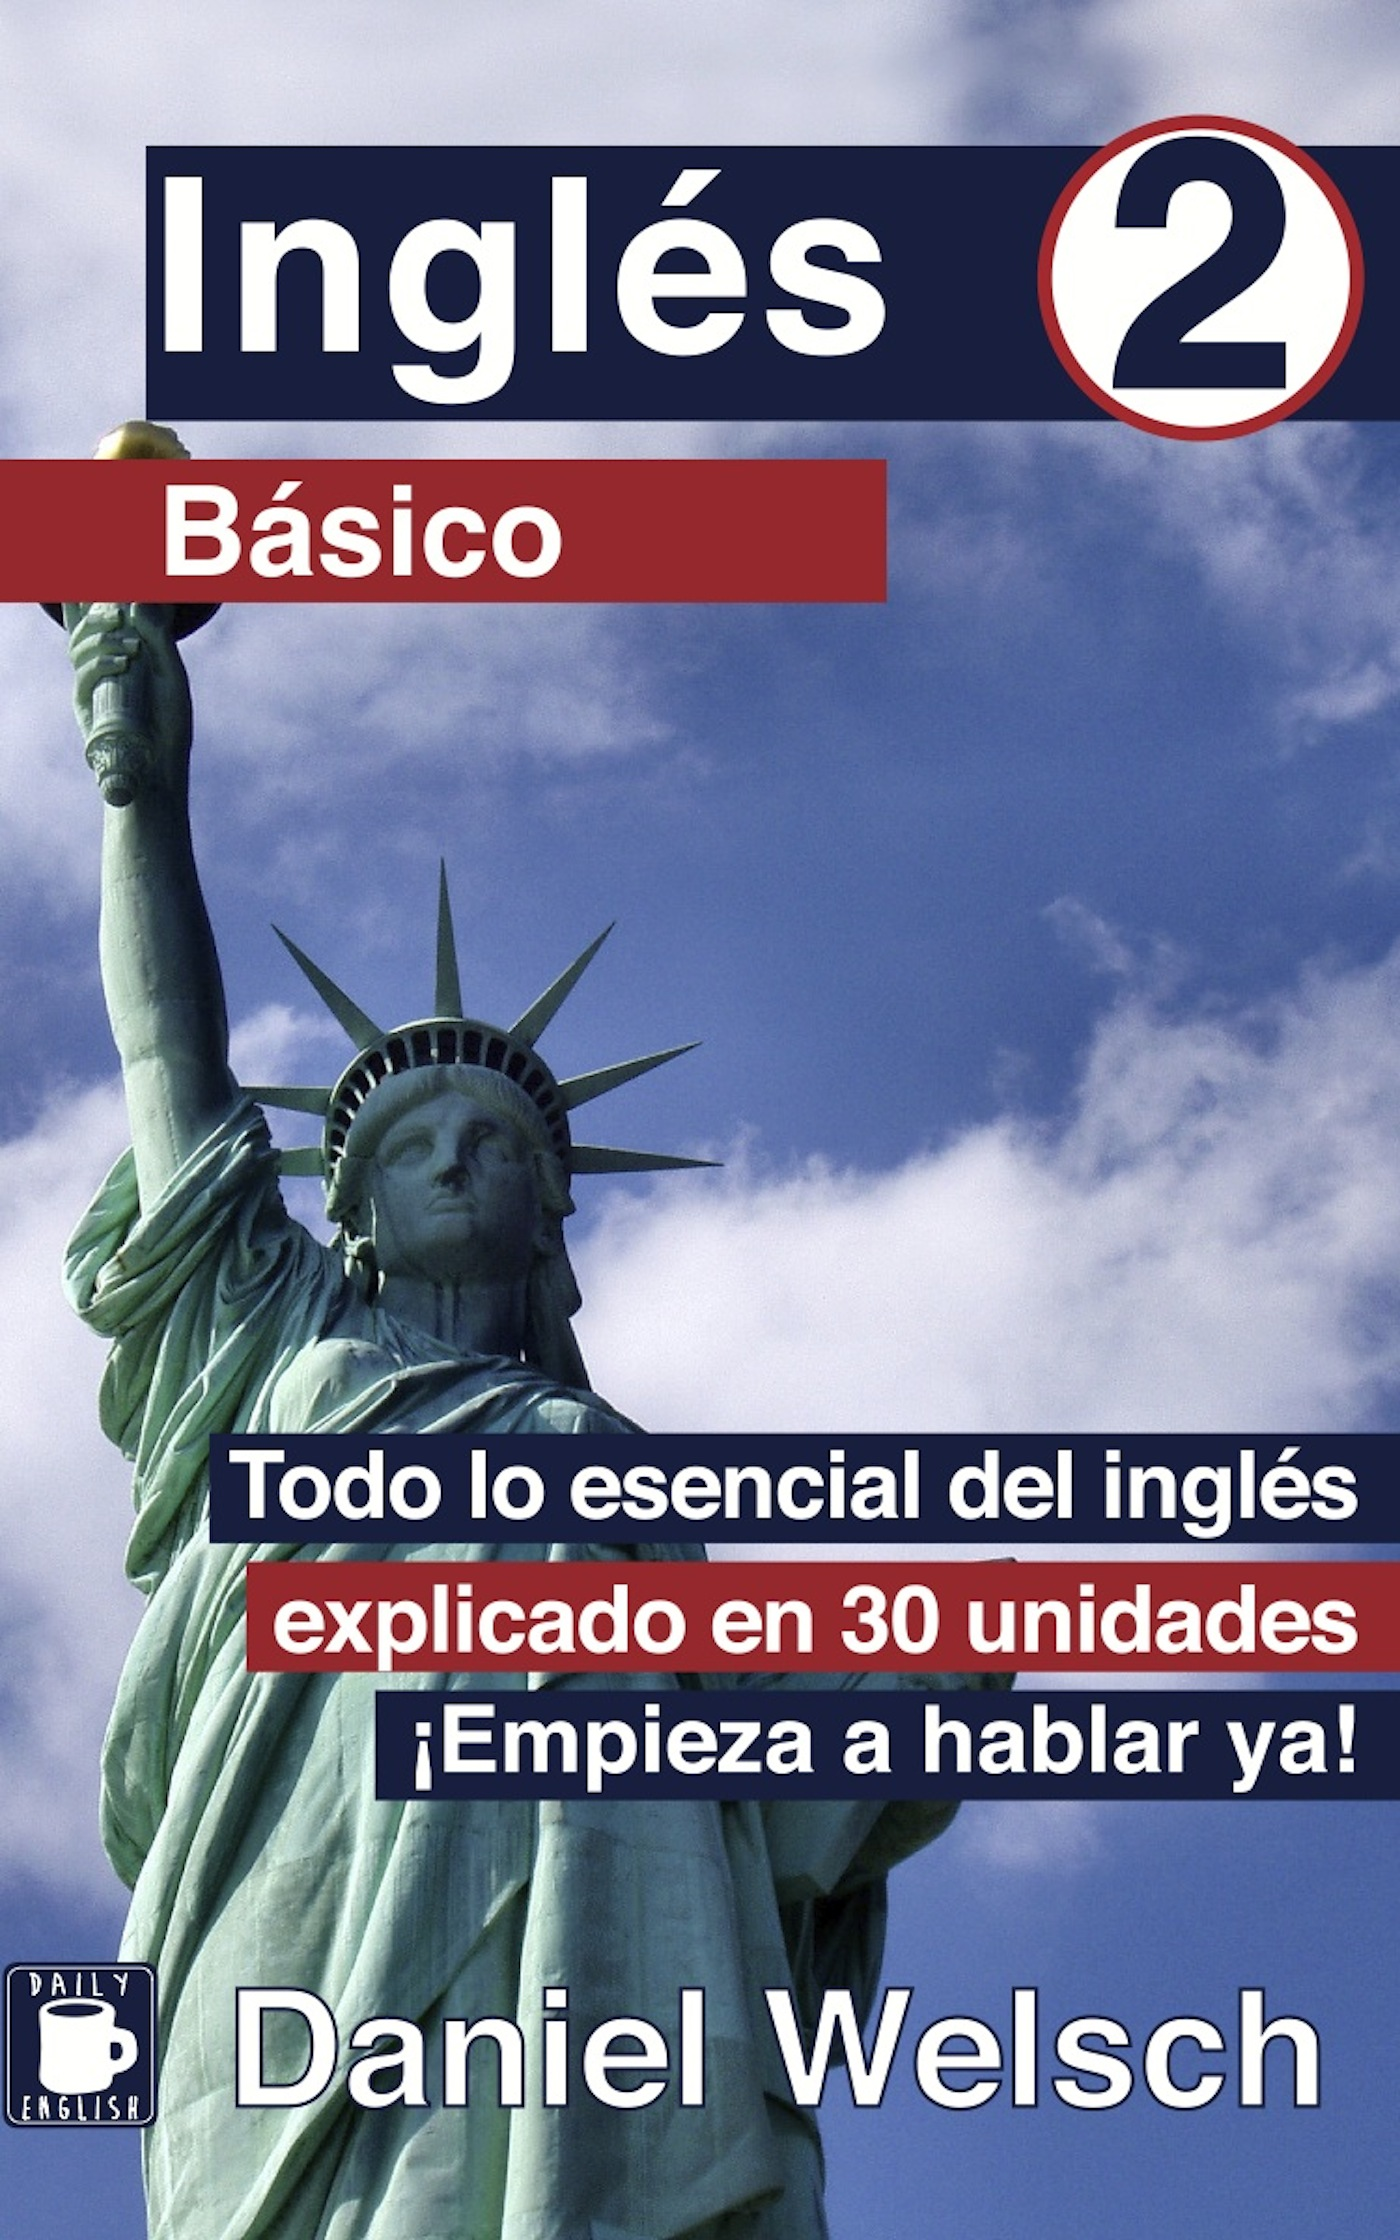 Ingles Basico Libro Daniel Welsch On Gumroad